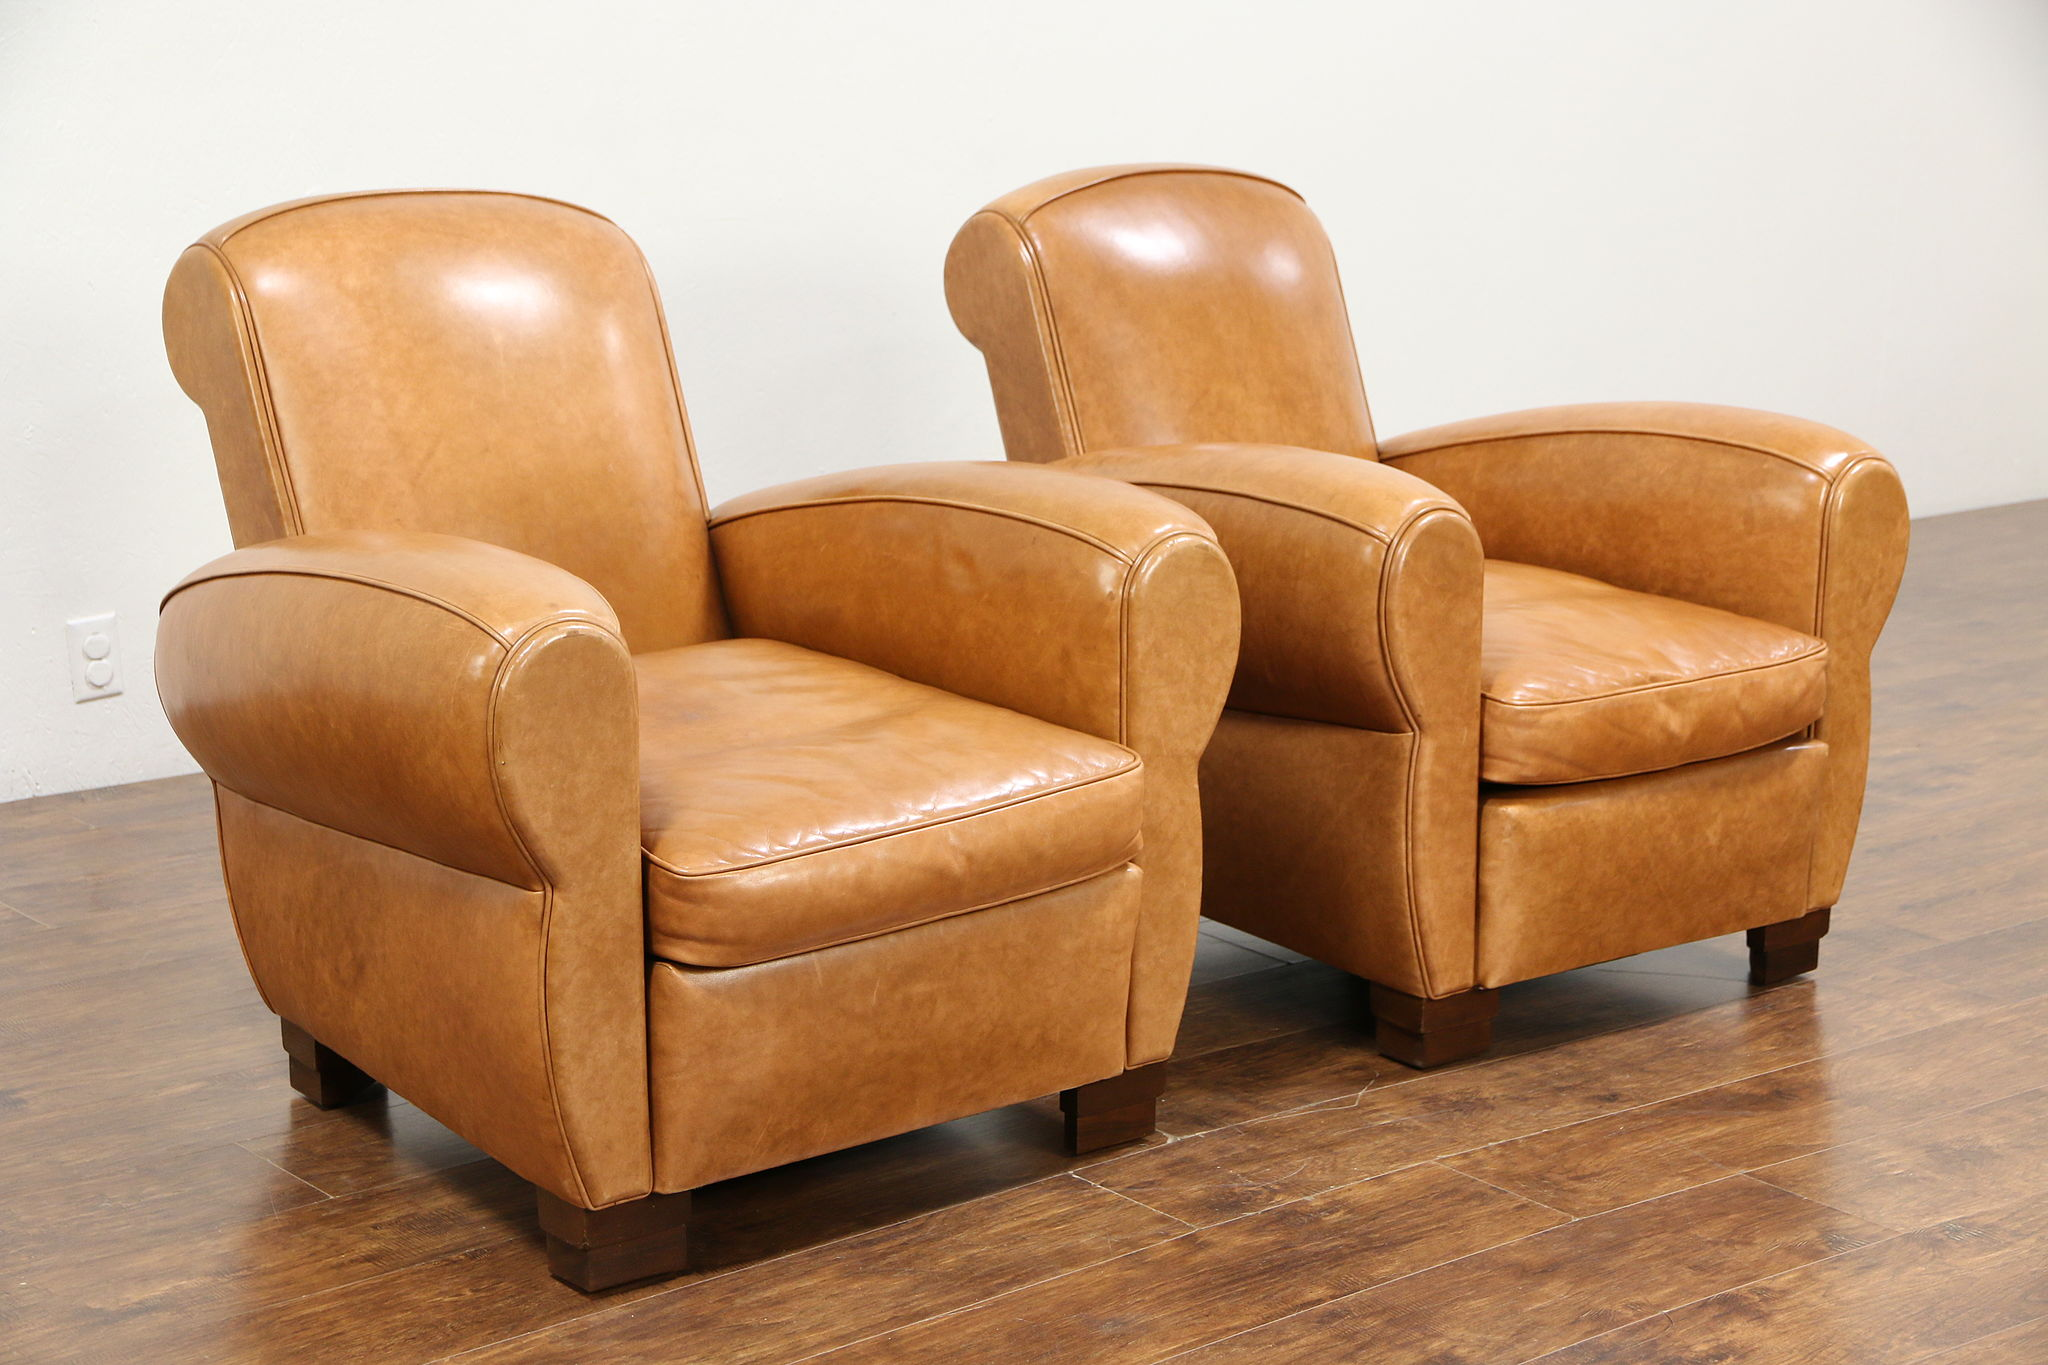 Fine Pair Of Vintage French Art Deco Style Leather Club Chairs Squirreltailoven Fun Painted Chair Ideas Images Squirreltailovenorg